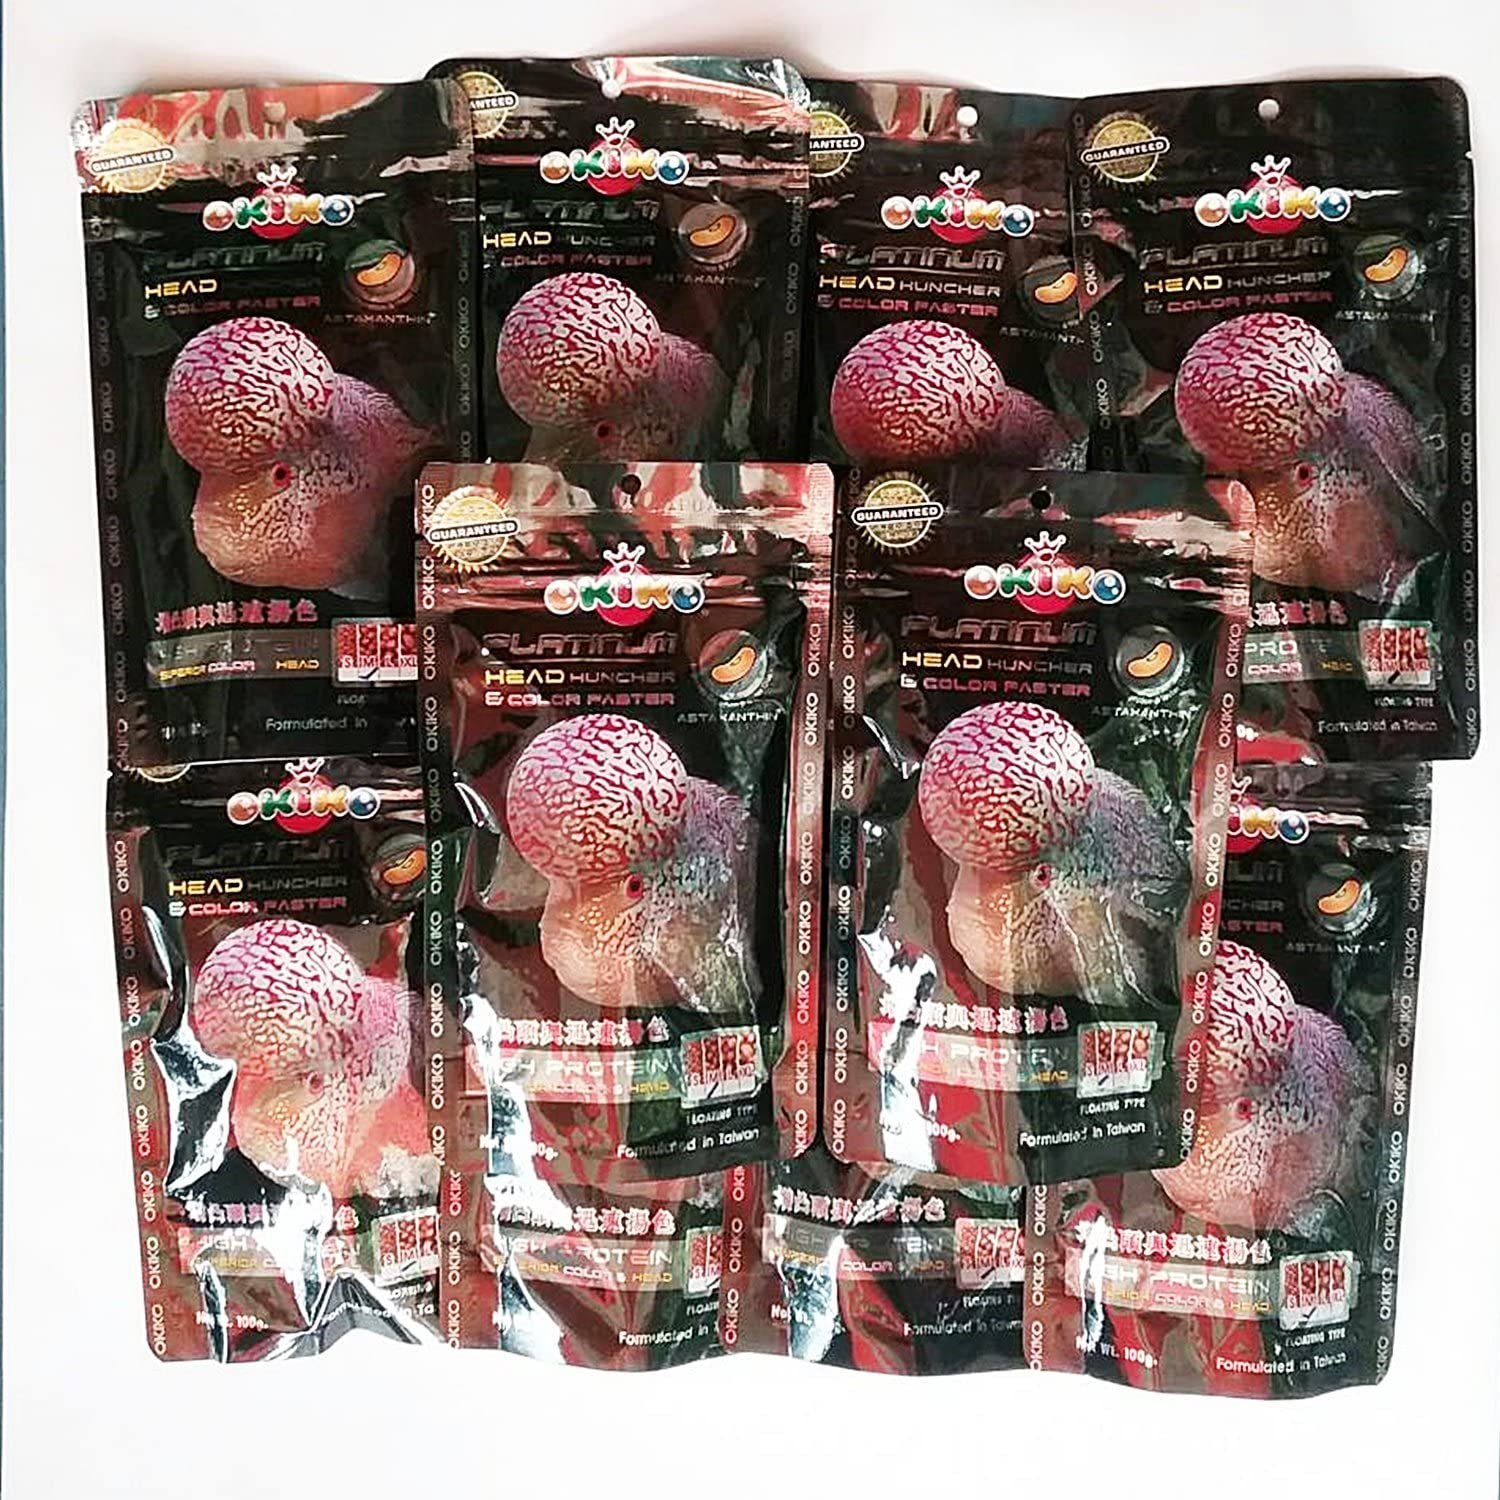 OKIKO 12 Packs of 3.5 oz (100g) Platinum Head Huncher & Color Faster Floating Pellets with Astaxanthin Plus Flowerhorn Cichlid Fish Food